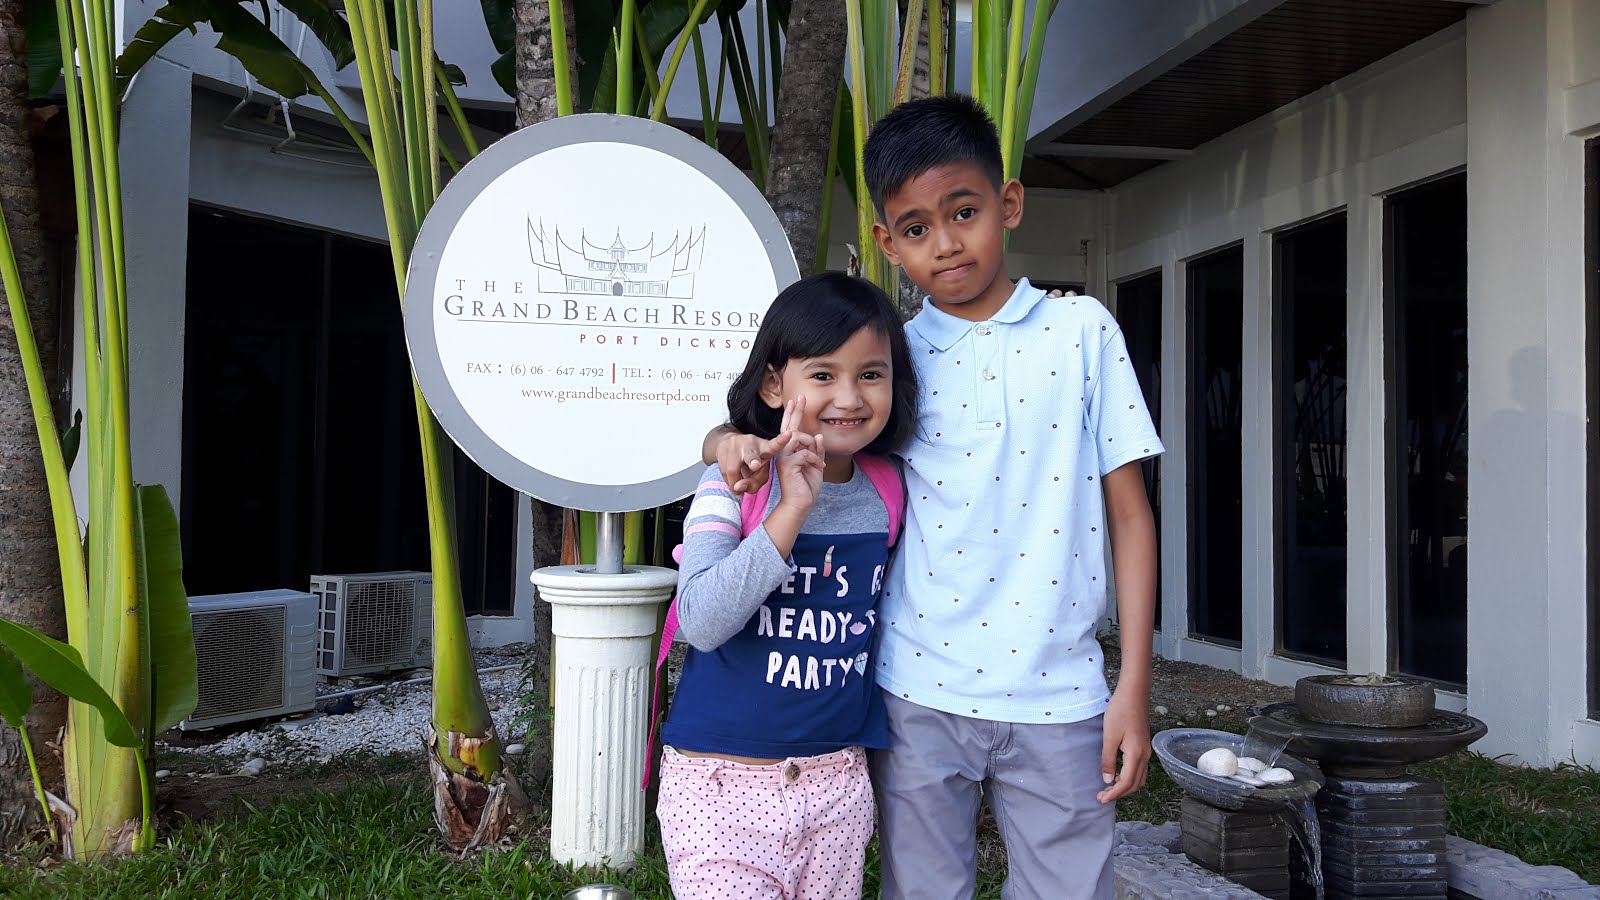 Grand Beach Resort PD 2016